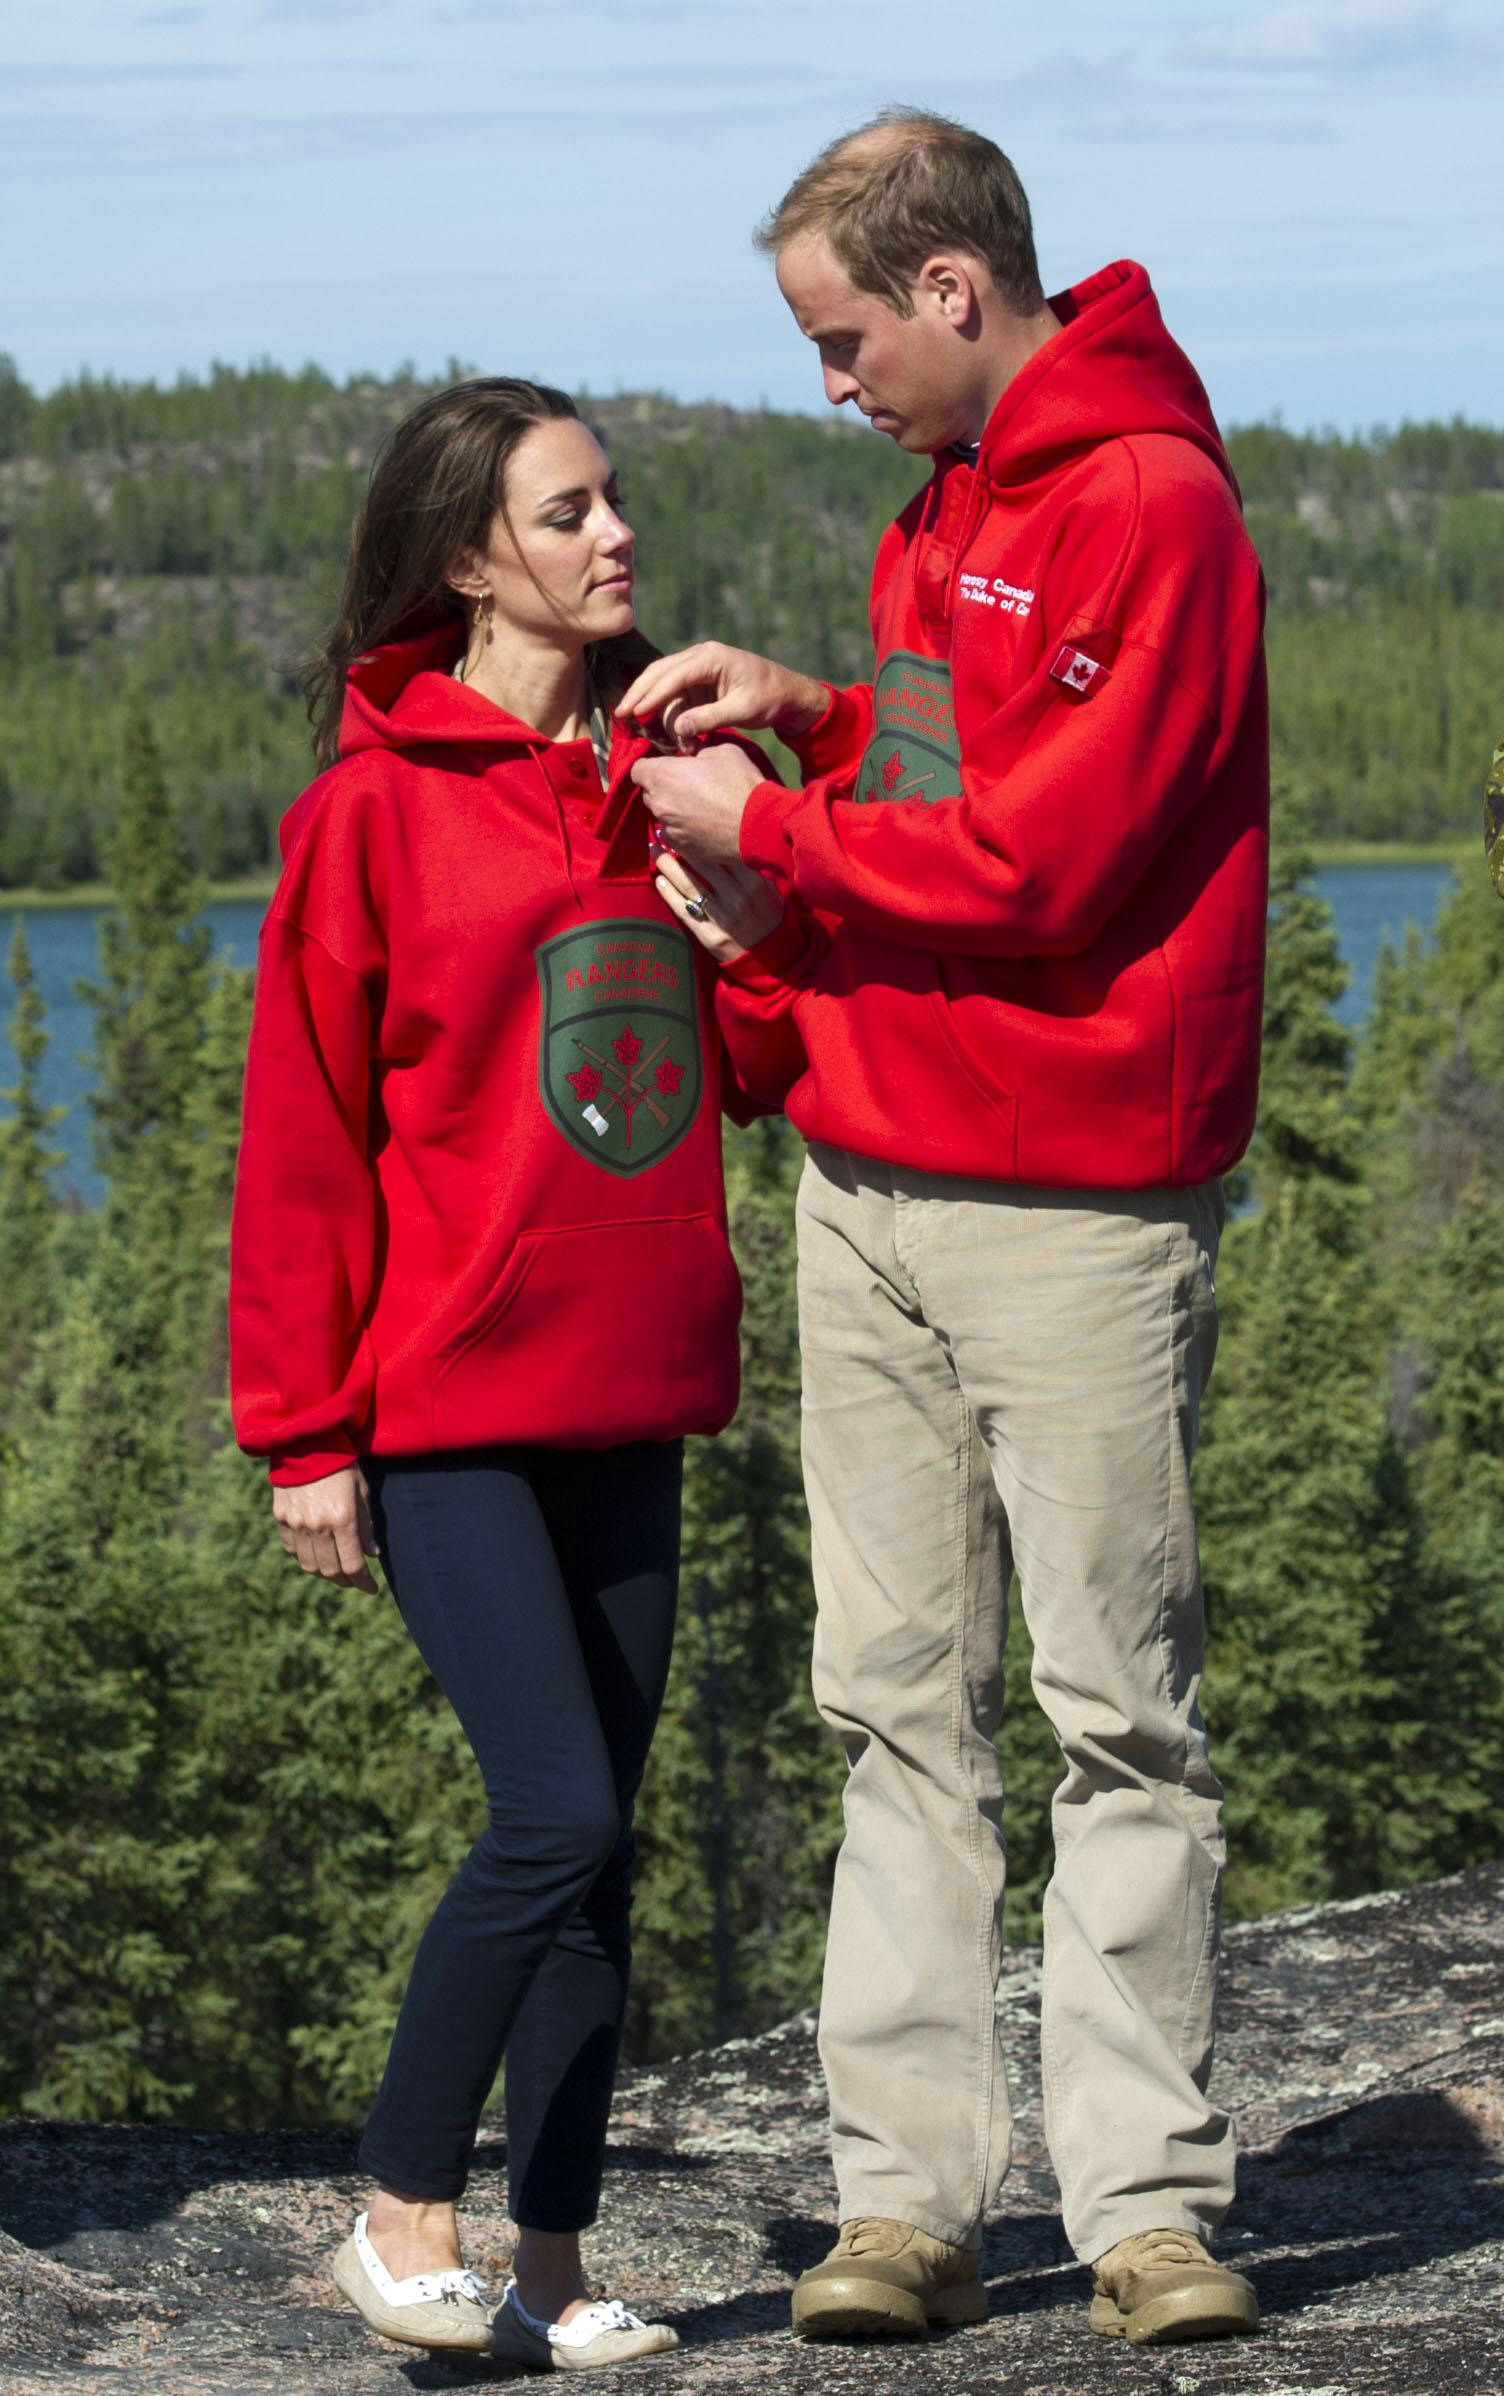 <strong>Matching Couple                                   </strong>                                   The Duke and Duchess of Cambridge wore matching red sweatshirts during a visit to Blachford Lake on July 5, 2011.